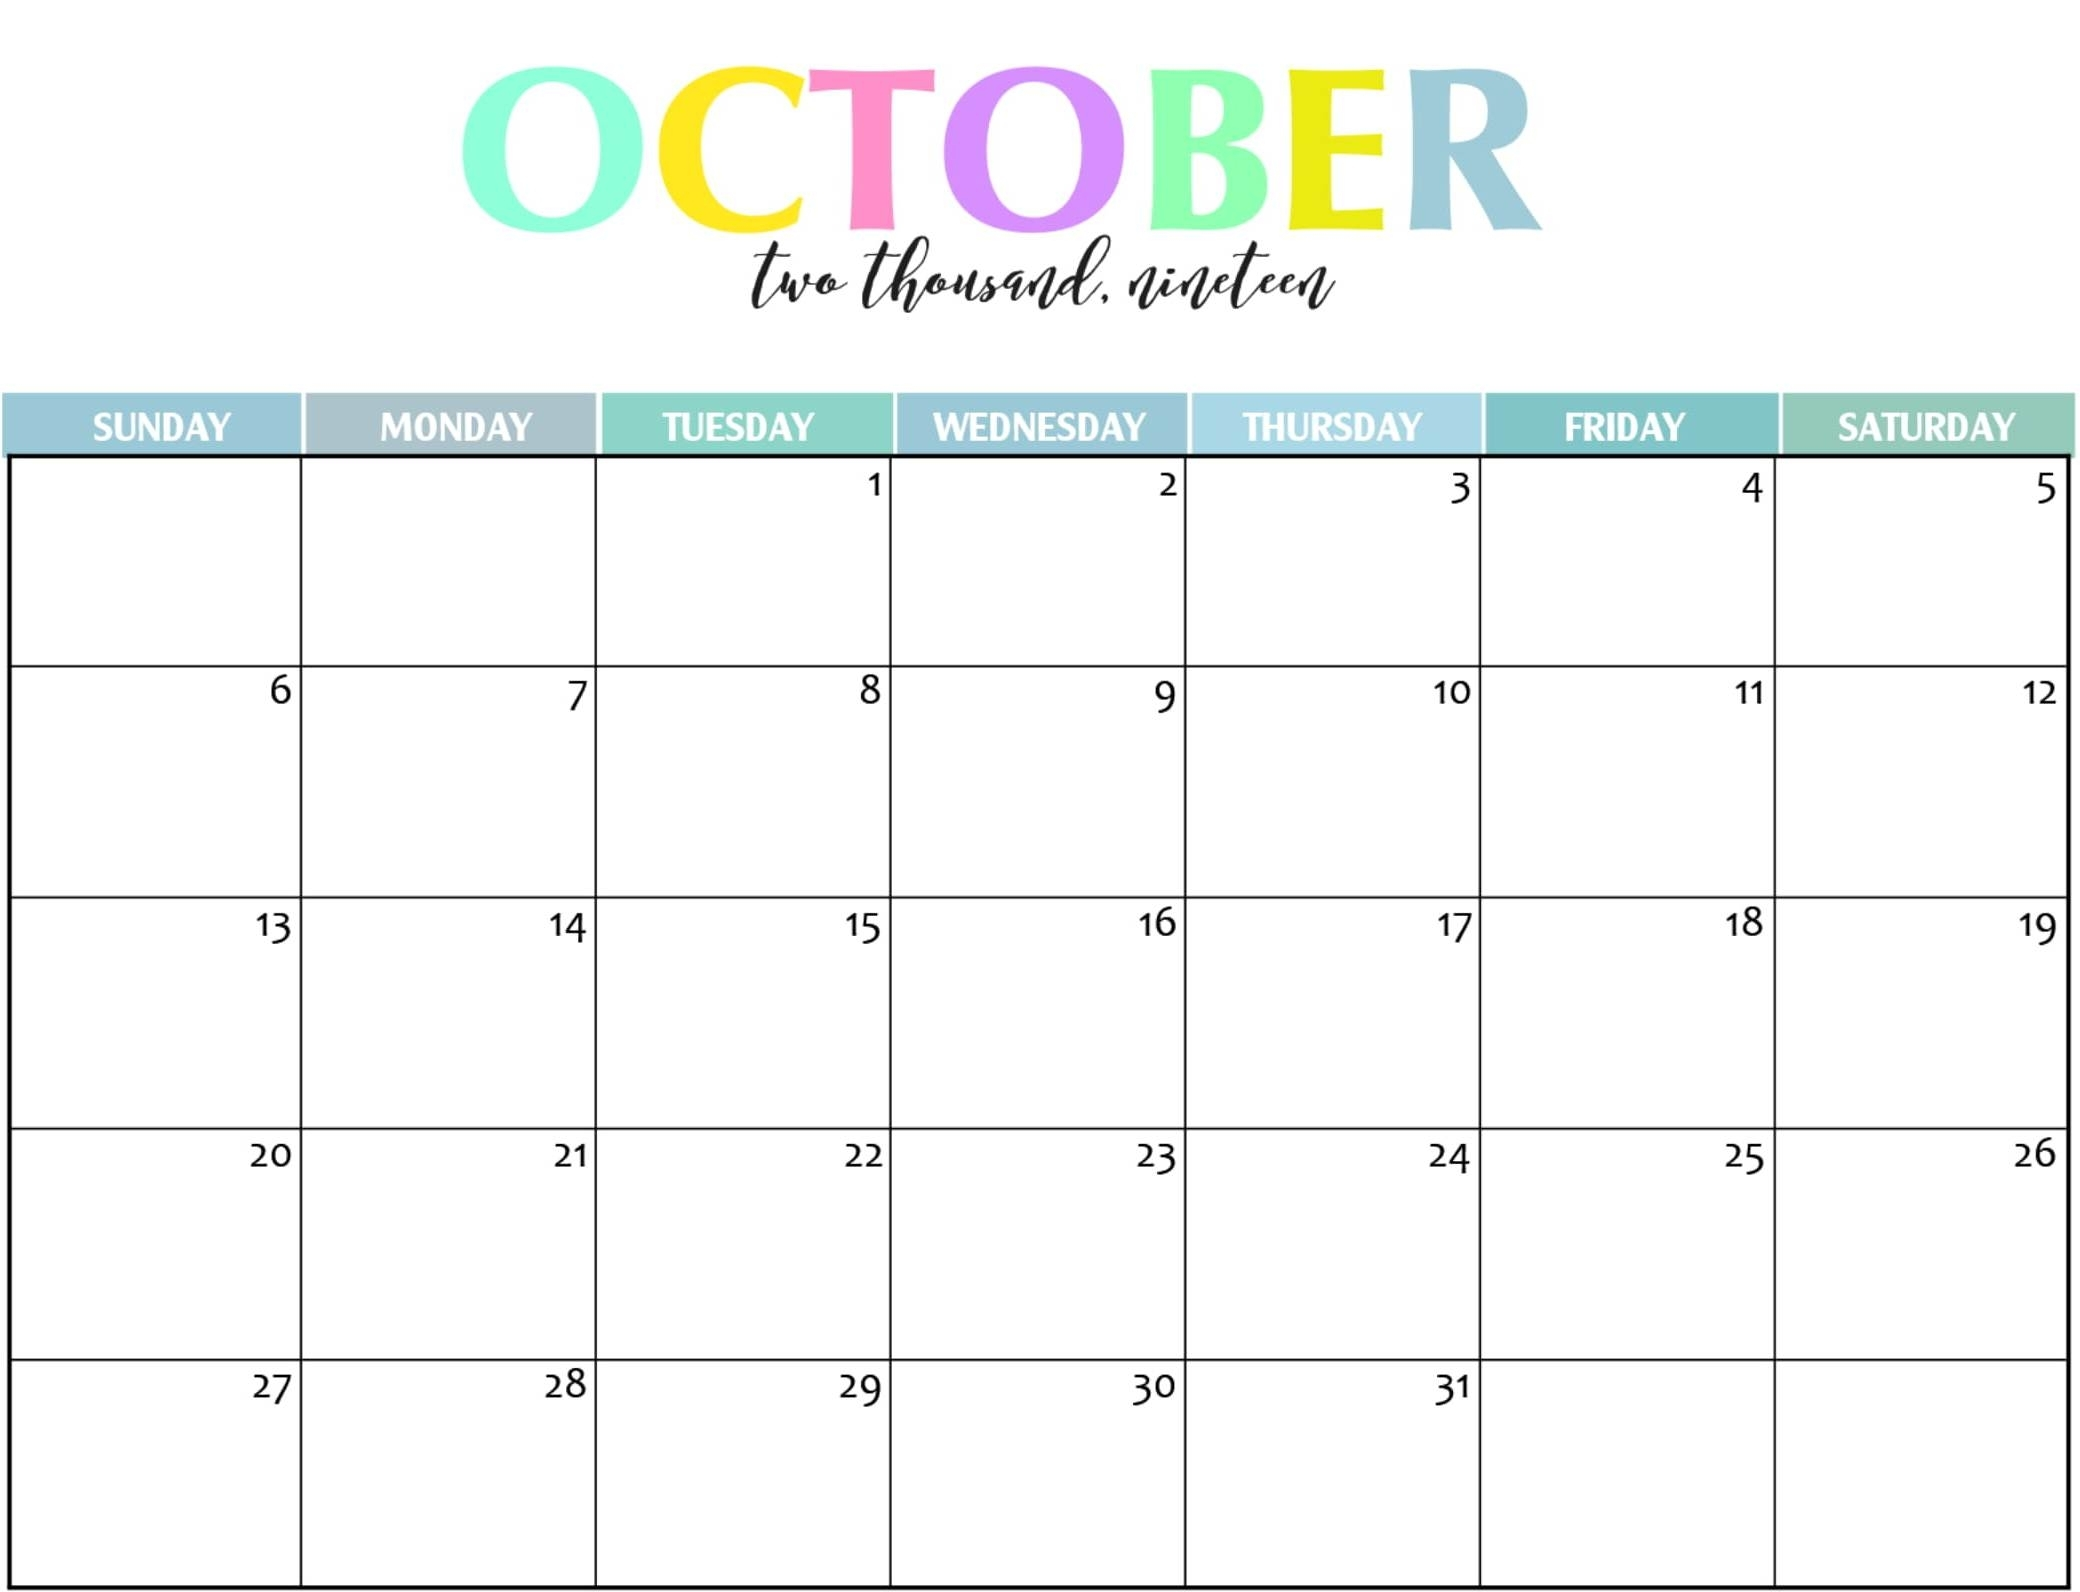 Free Printable October 2019 Calendar Editable - Set Your regarding Printable Calendar 2019 With Lines